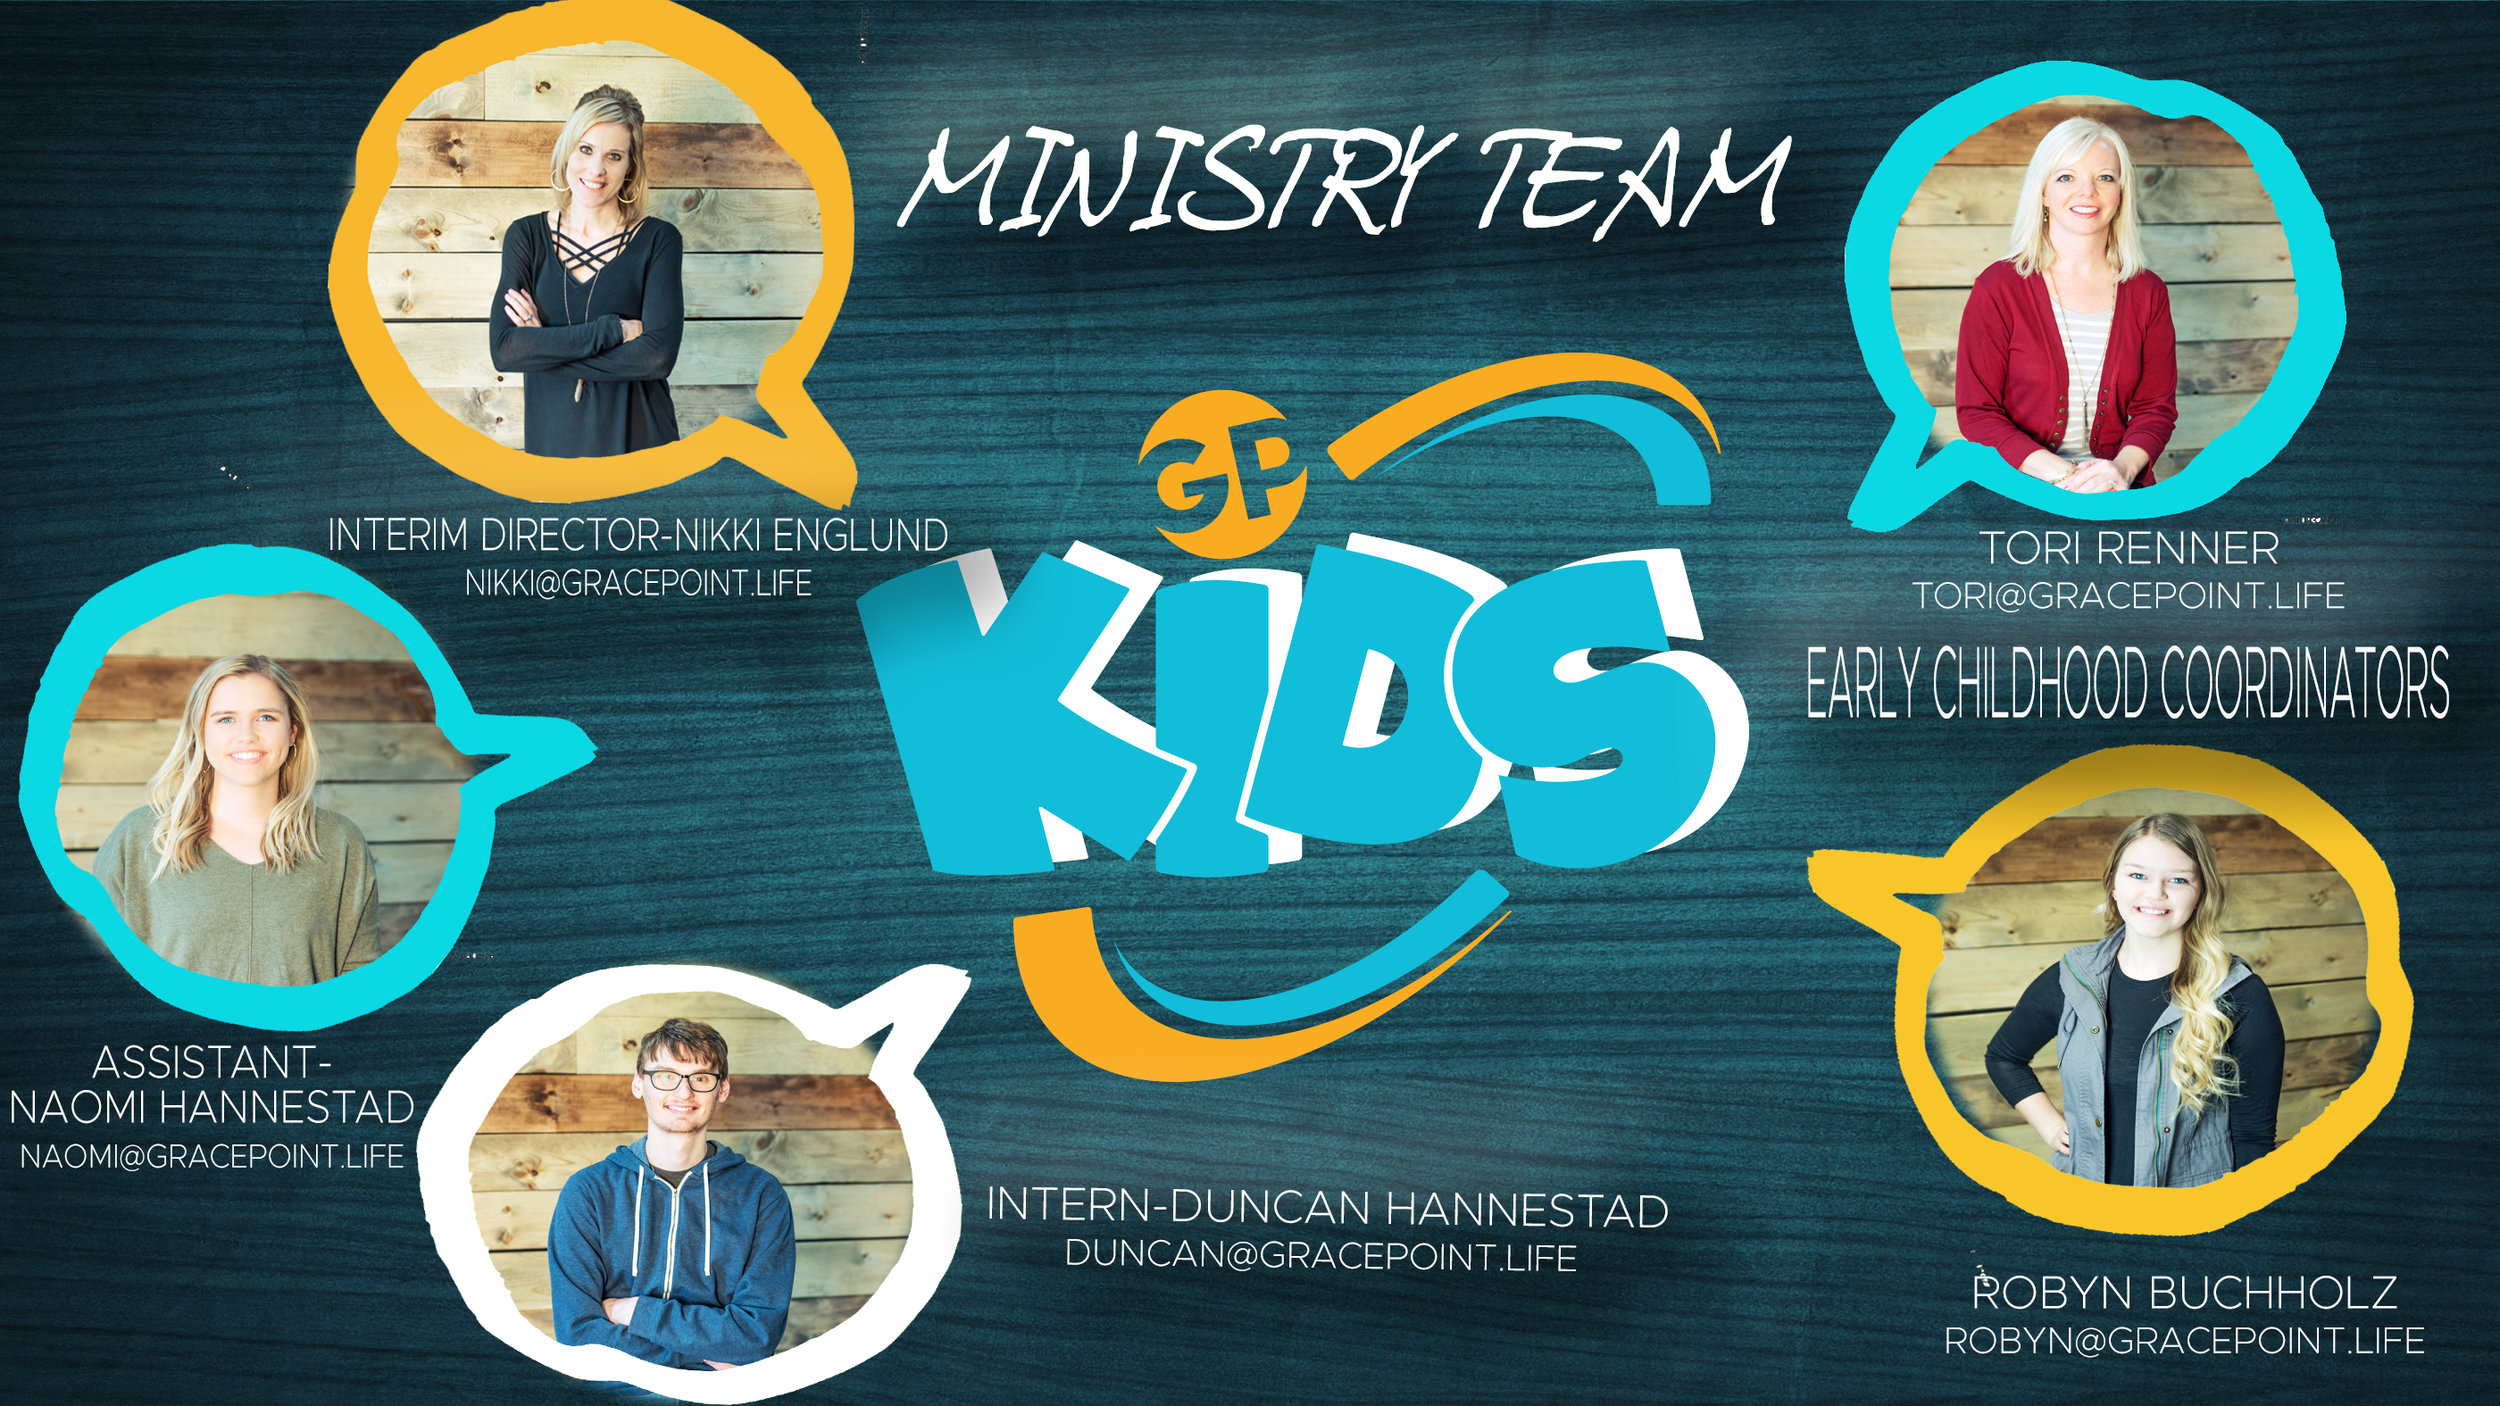 """Alone we can do so little; together we can do so much""-Helen Keller  Meet the NEW GPKids Team! As many of you know, our leadership has shifted in the past couple months. We want to make sure to communicate clearly what we are doing so YOU know that loving and discipling KIDS is still our priority! We also know that GP Kids is such a big ministry. Our prayer is that through this fabulous team of individuals, that we will continue to move kids into a relationship with Him. Kids who will love God, love life, and love others. We feel we can BEST accomplish this through a team of people who each have unique gifts to bless and encourage the body. Stay tuned for fun personal profiles on each of these individuals!  Colossians 3:23  Whatever you do, work at it with all your heart, as working for the Lord, and not man."